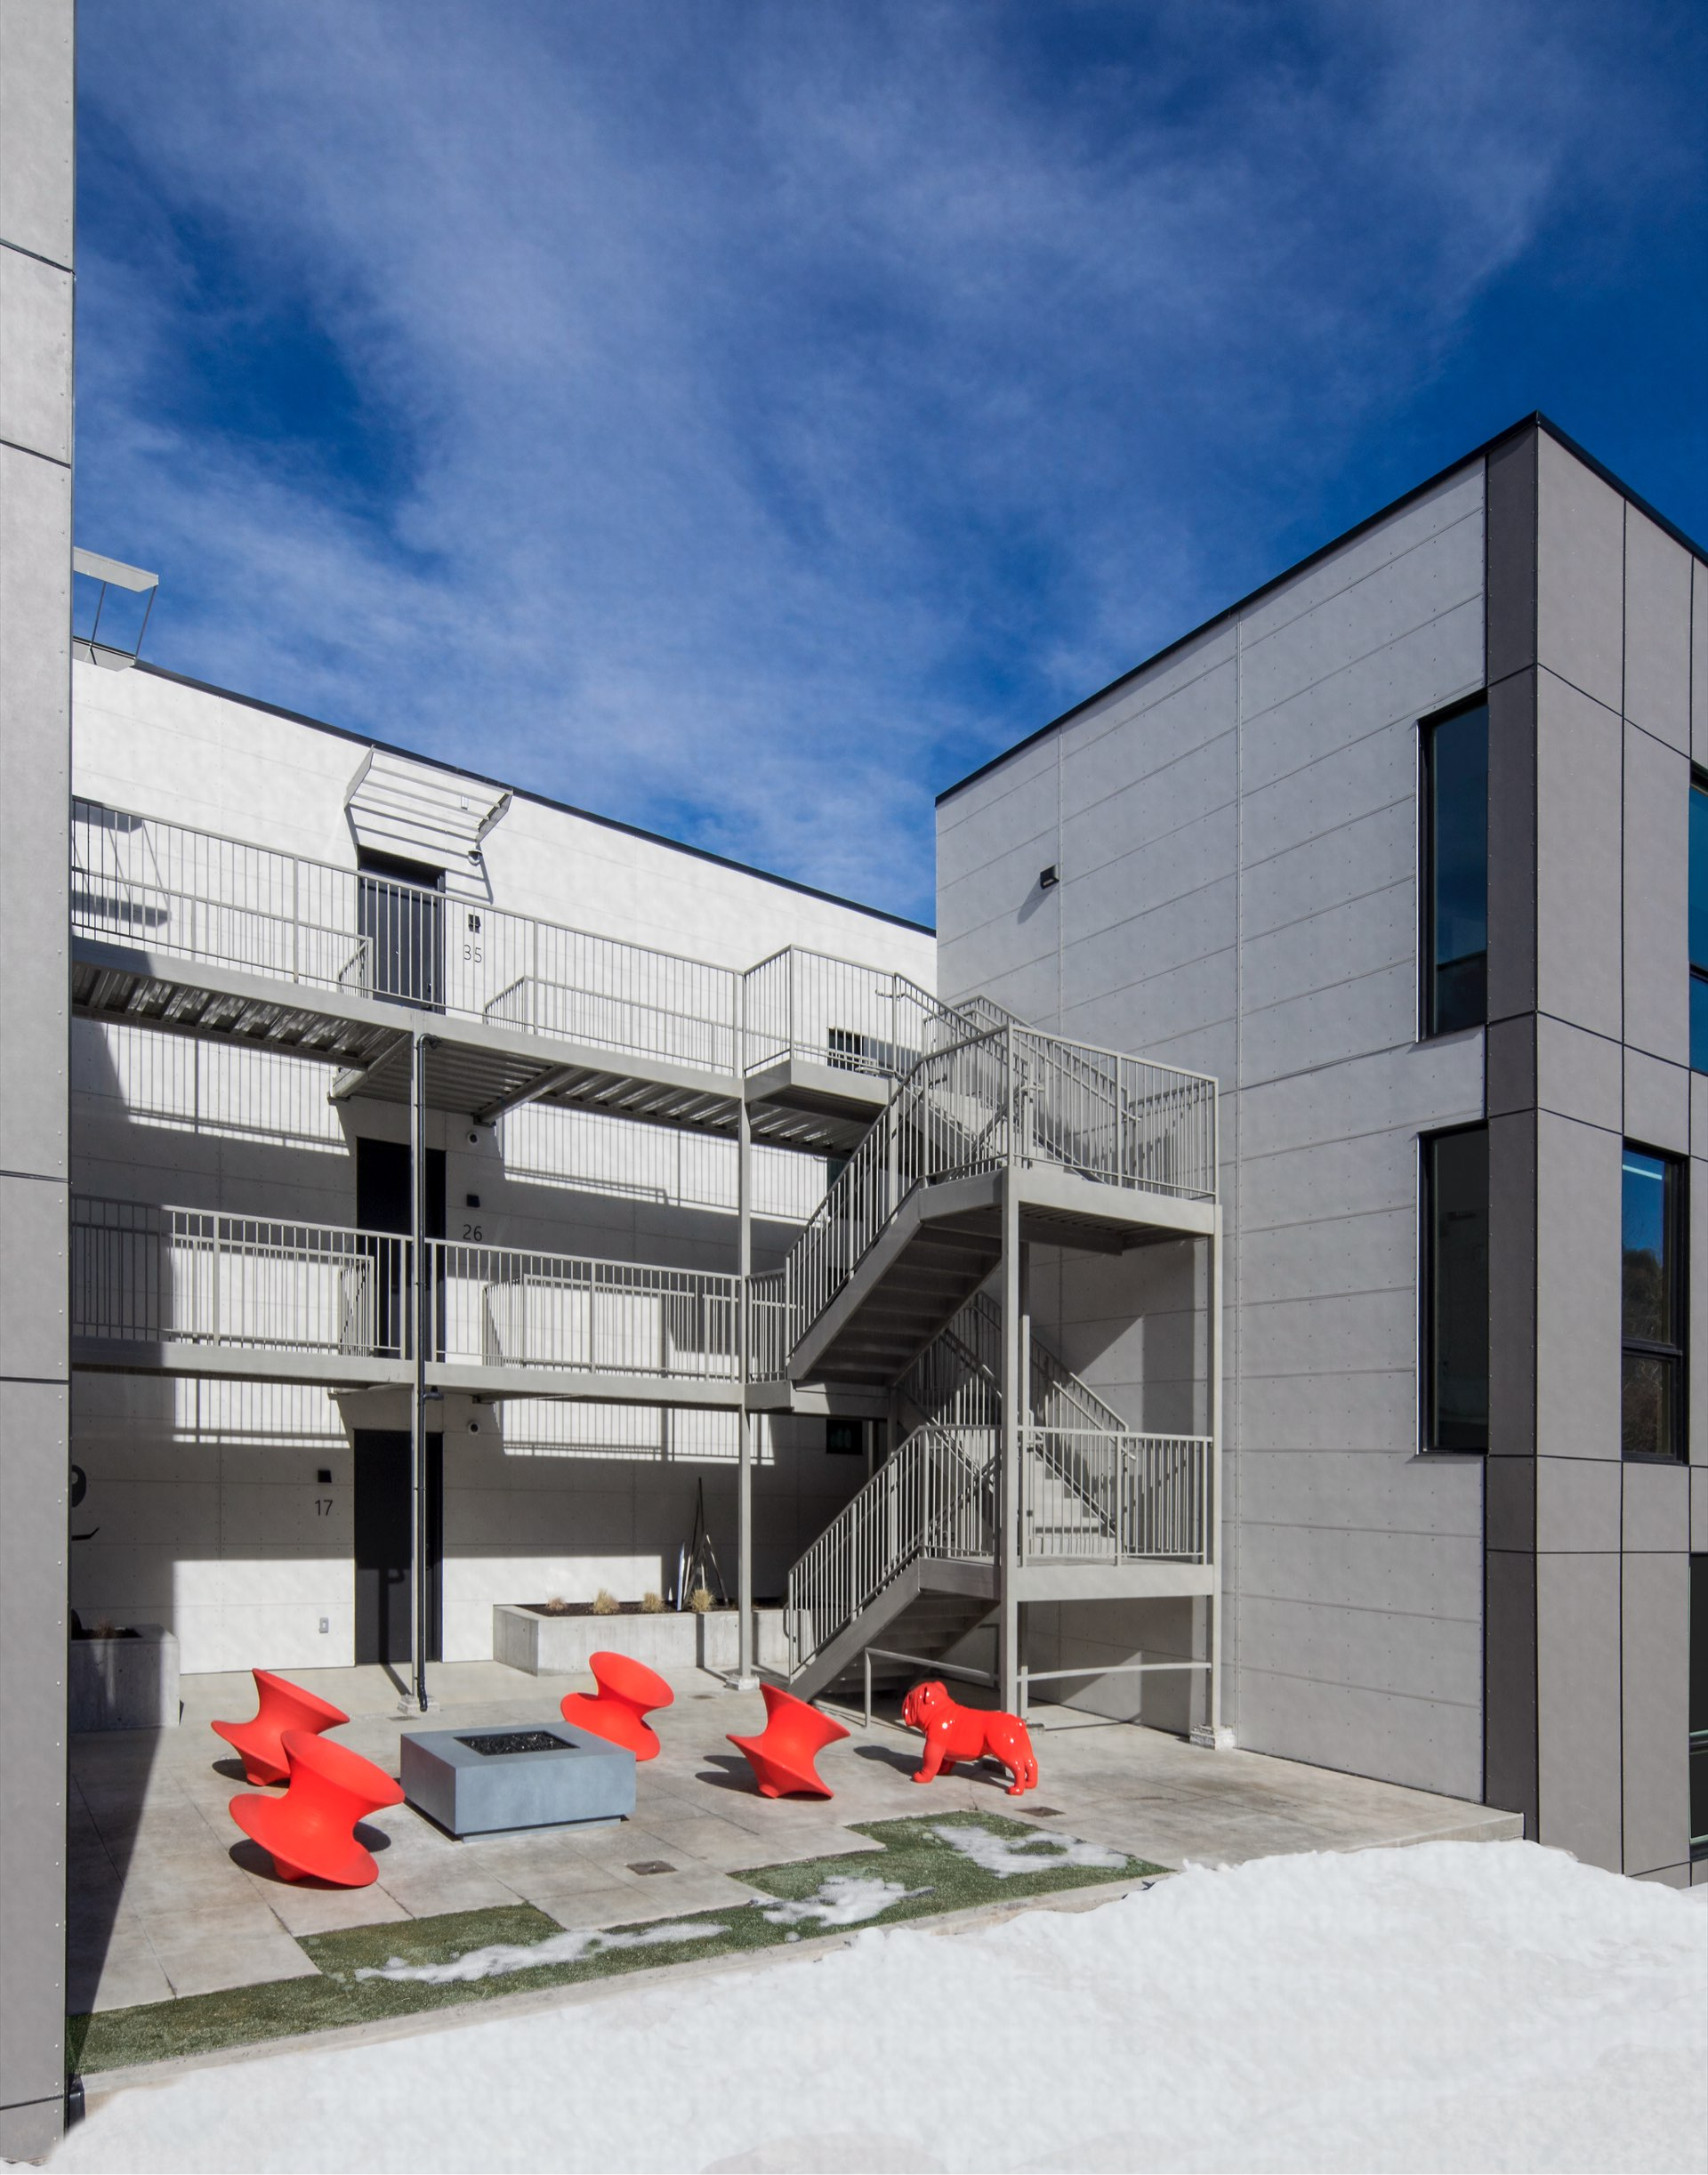 Prospector Residential, architectural design by Elliott Workgroup